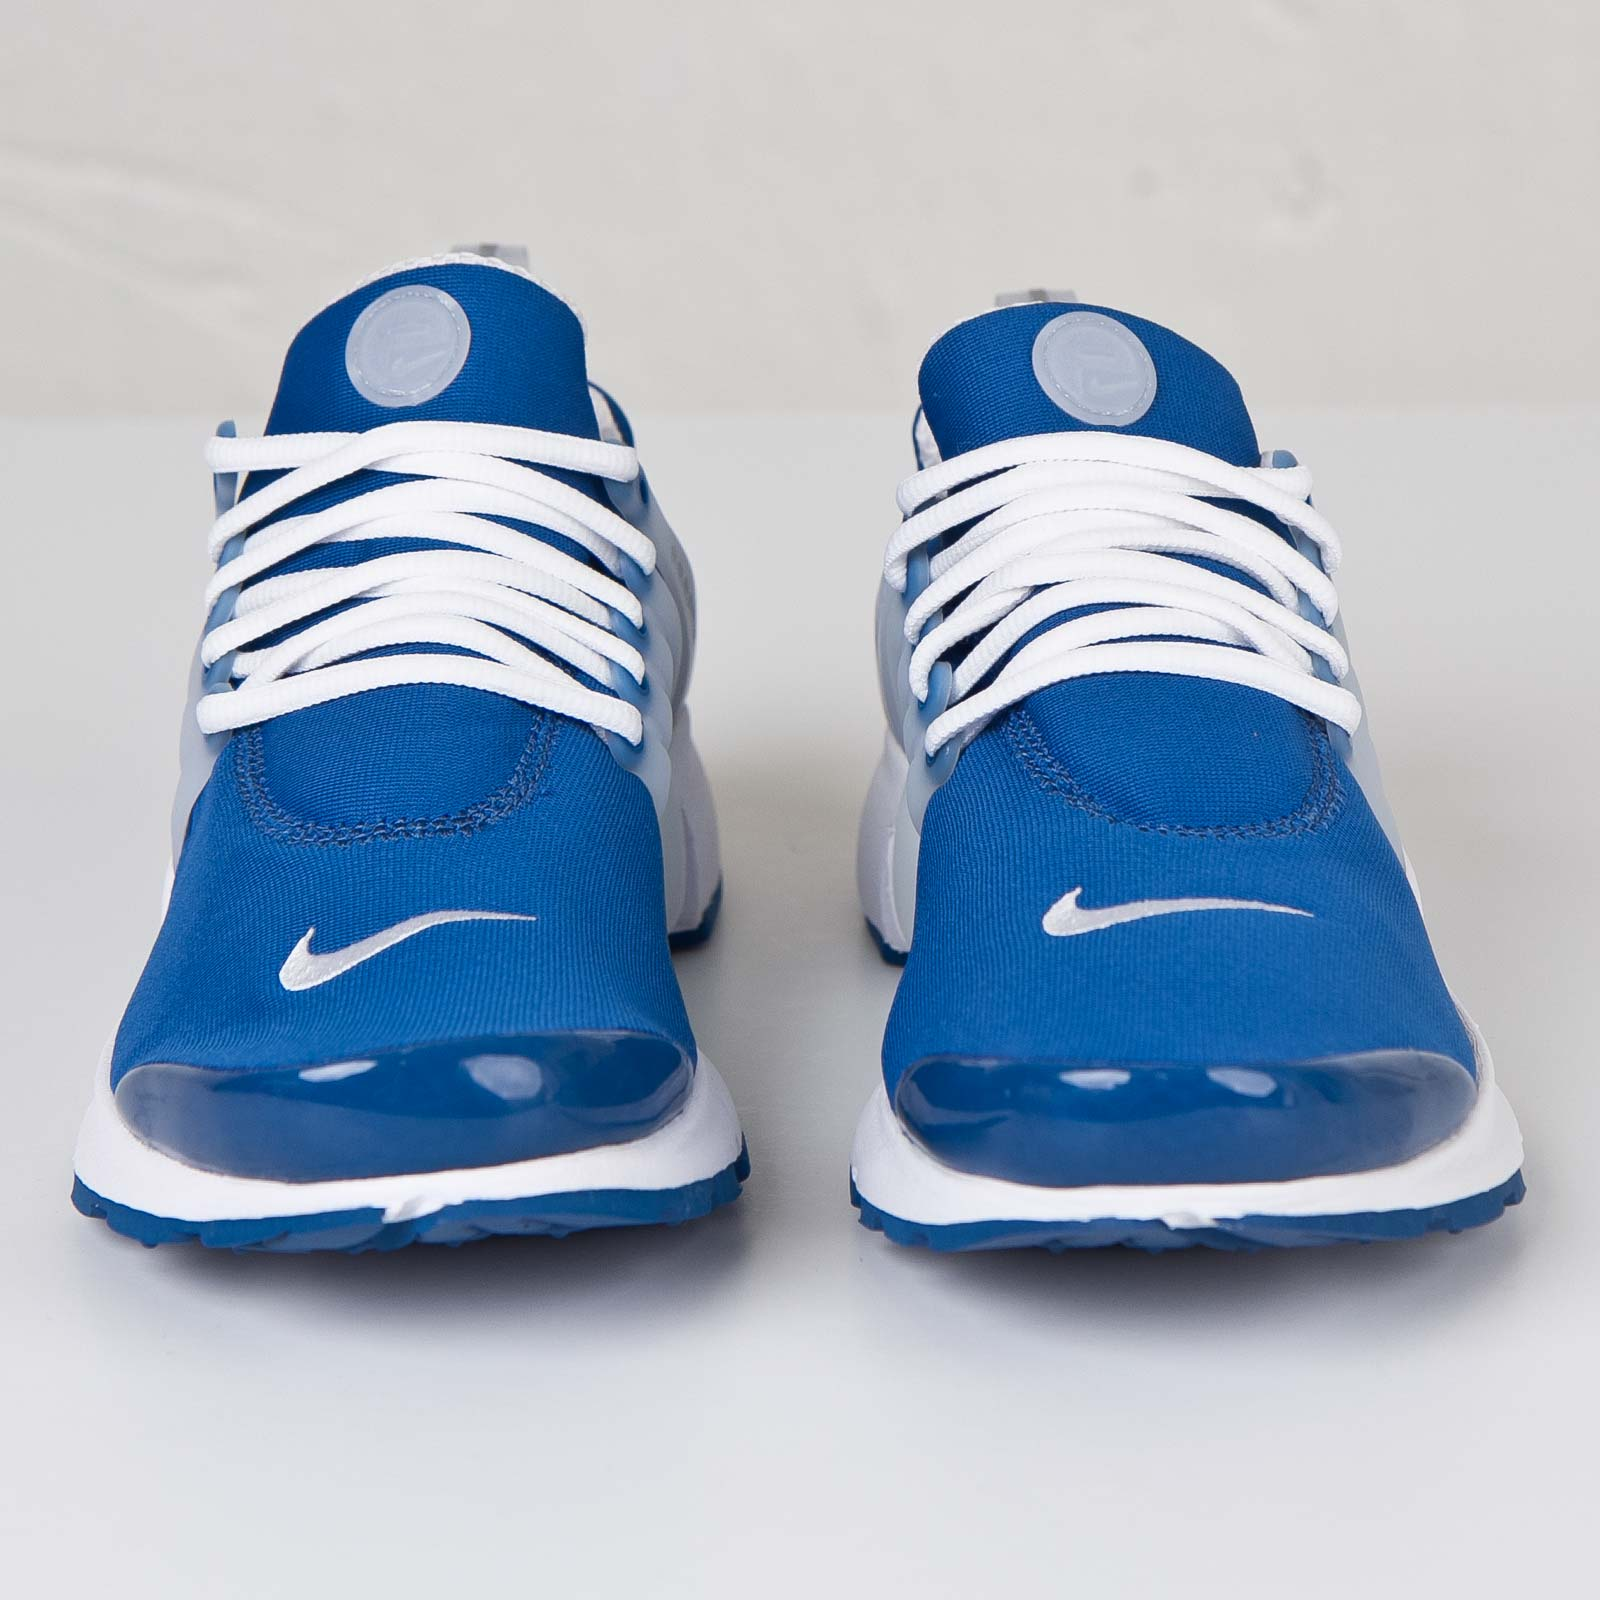 crazy price latest fashion new images of denmark nike air presto se weiß blau 9fd66 9f852